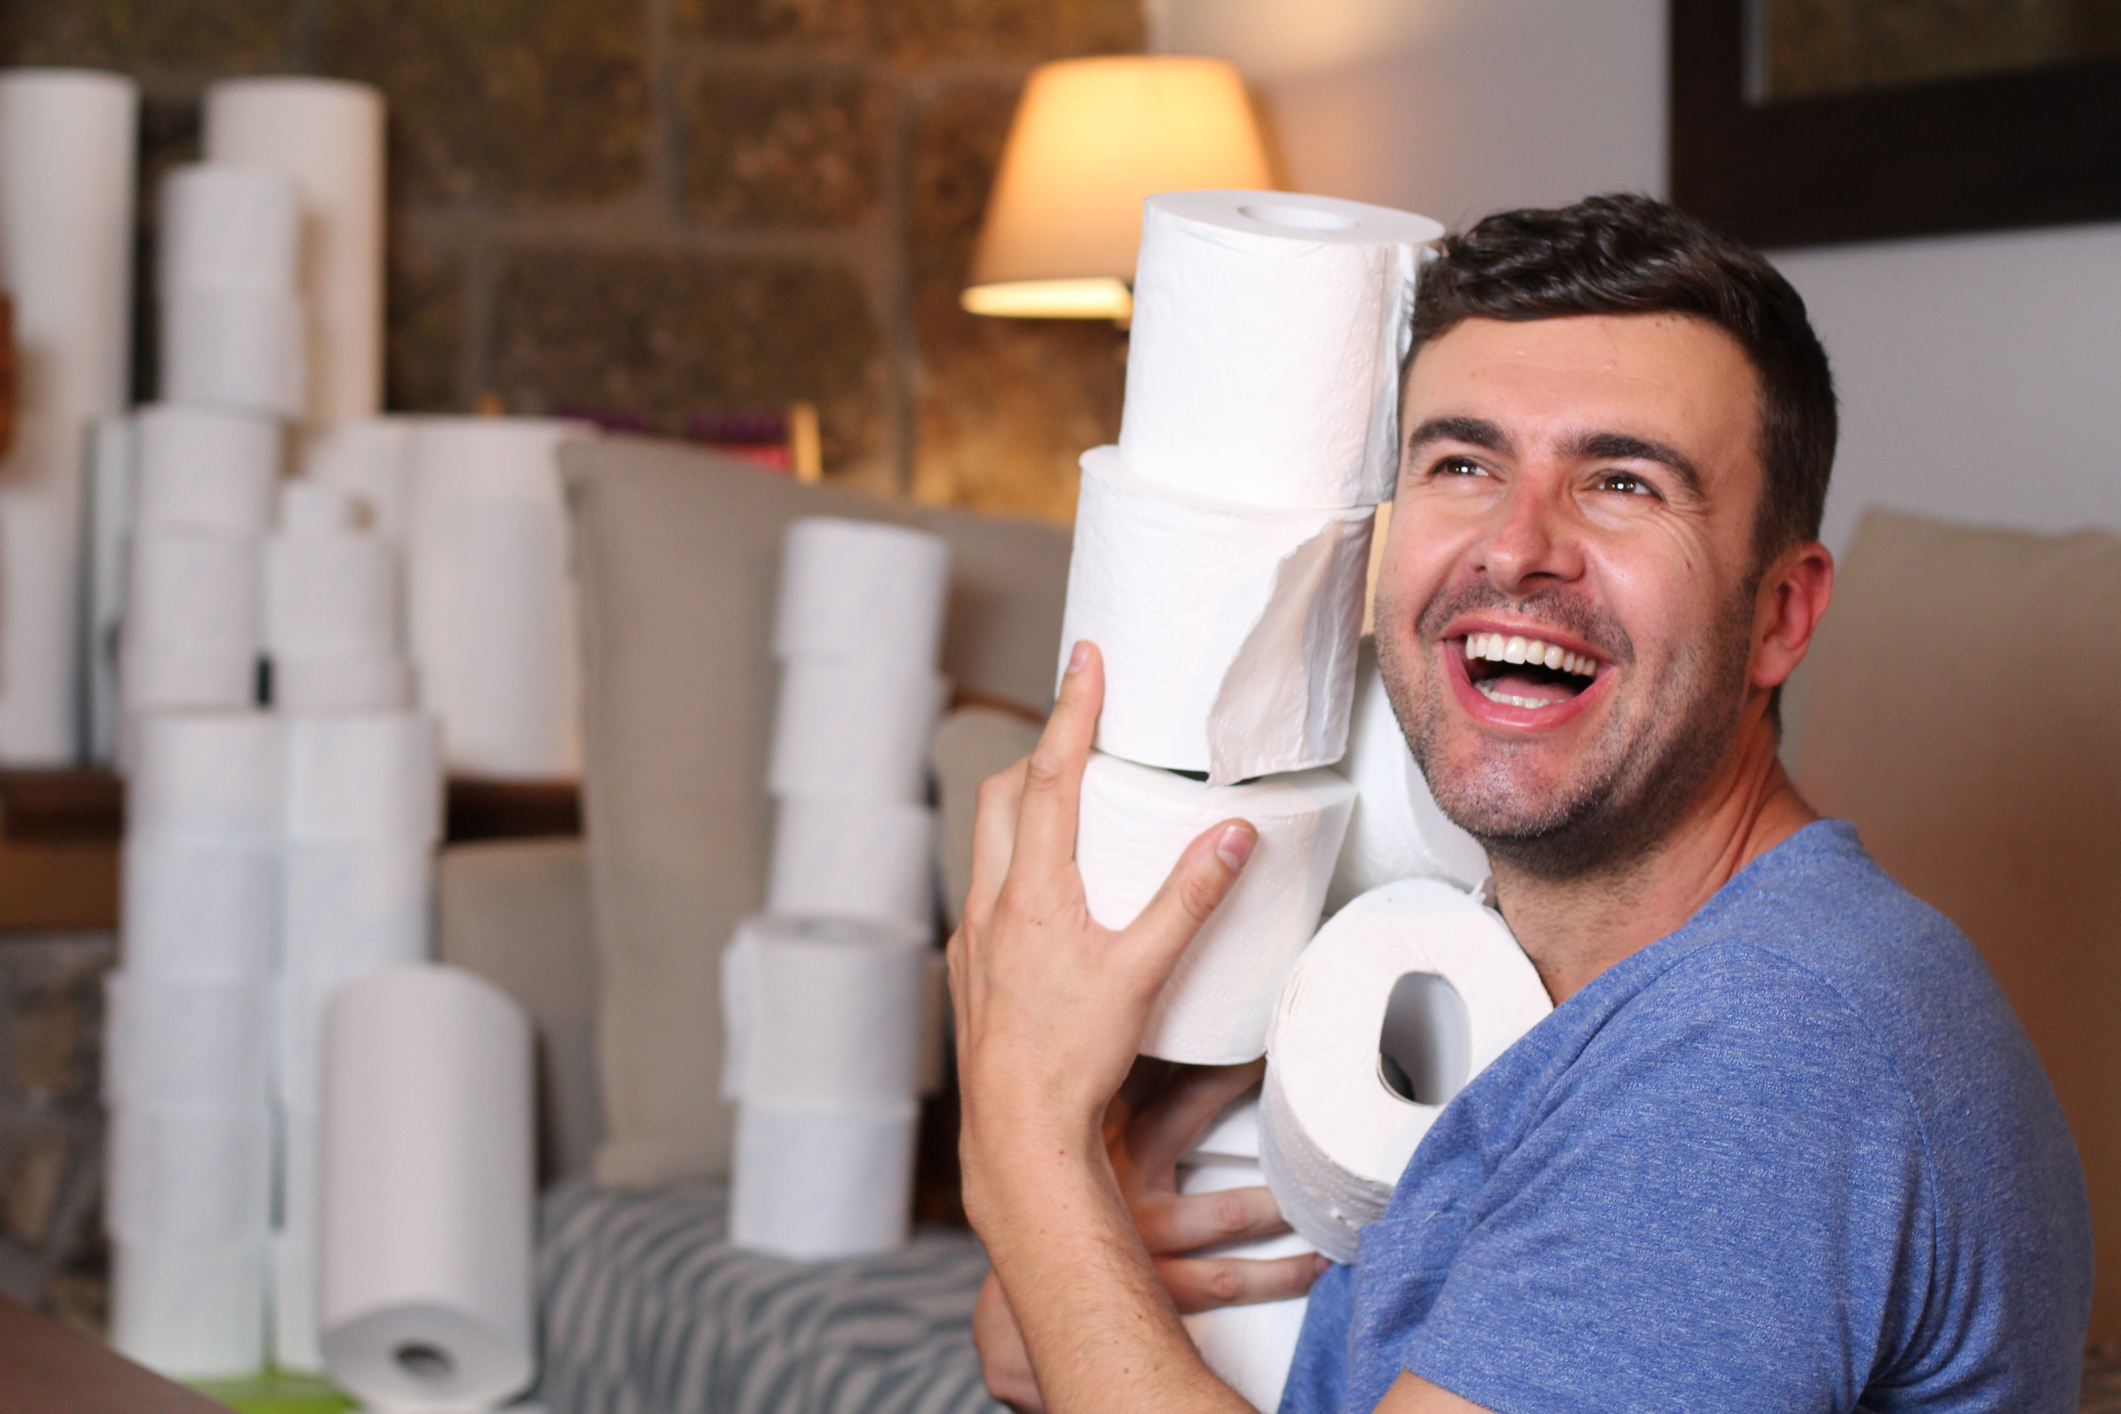 Man stocking up toilet paper at home